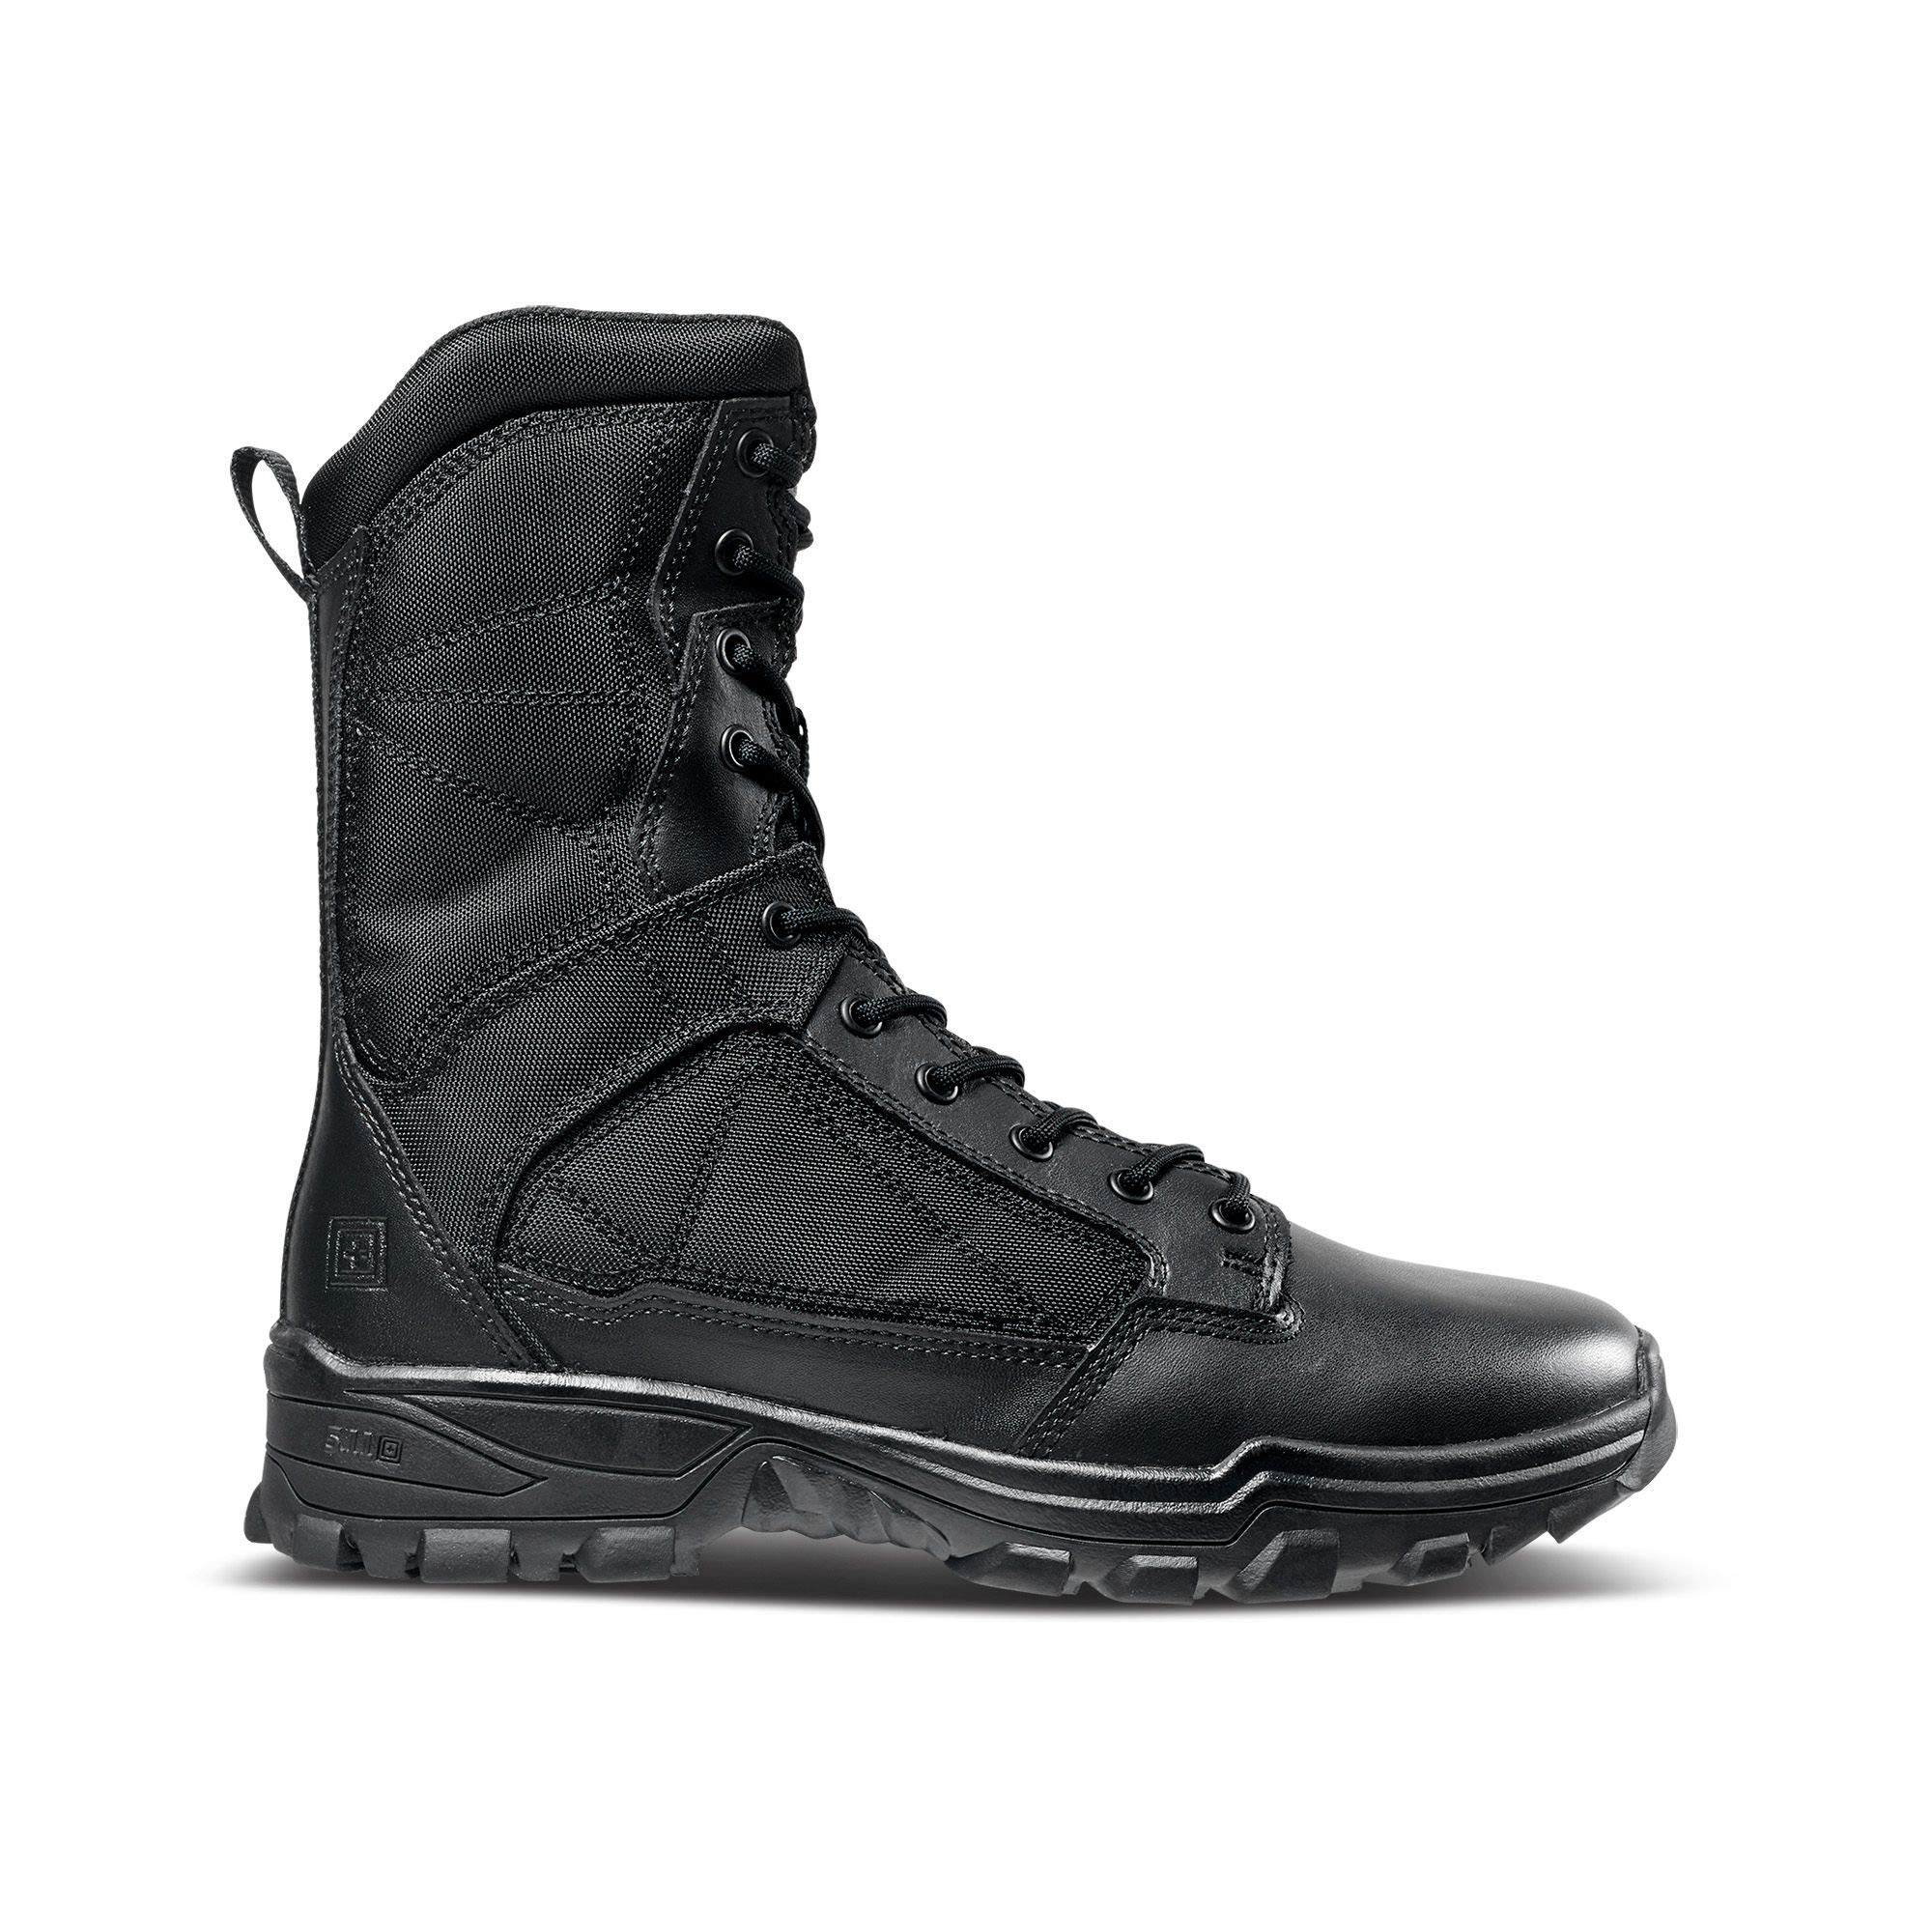 5.11 Tactical Men's Fast-Tac 8-Inch Leather Waterproof Combat Military Boots, Style 12387